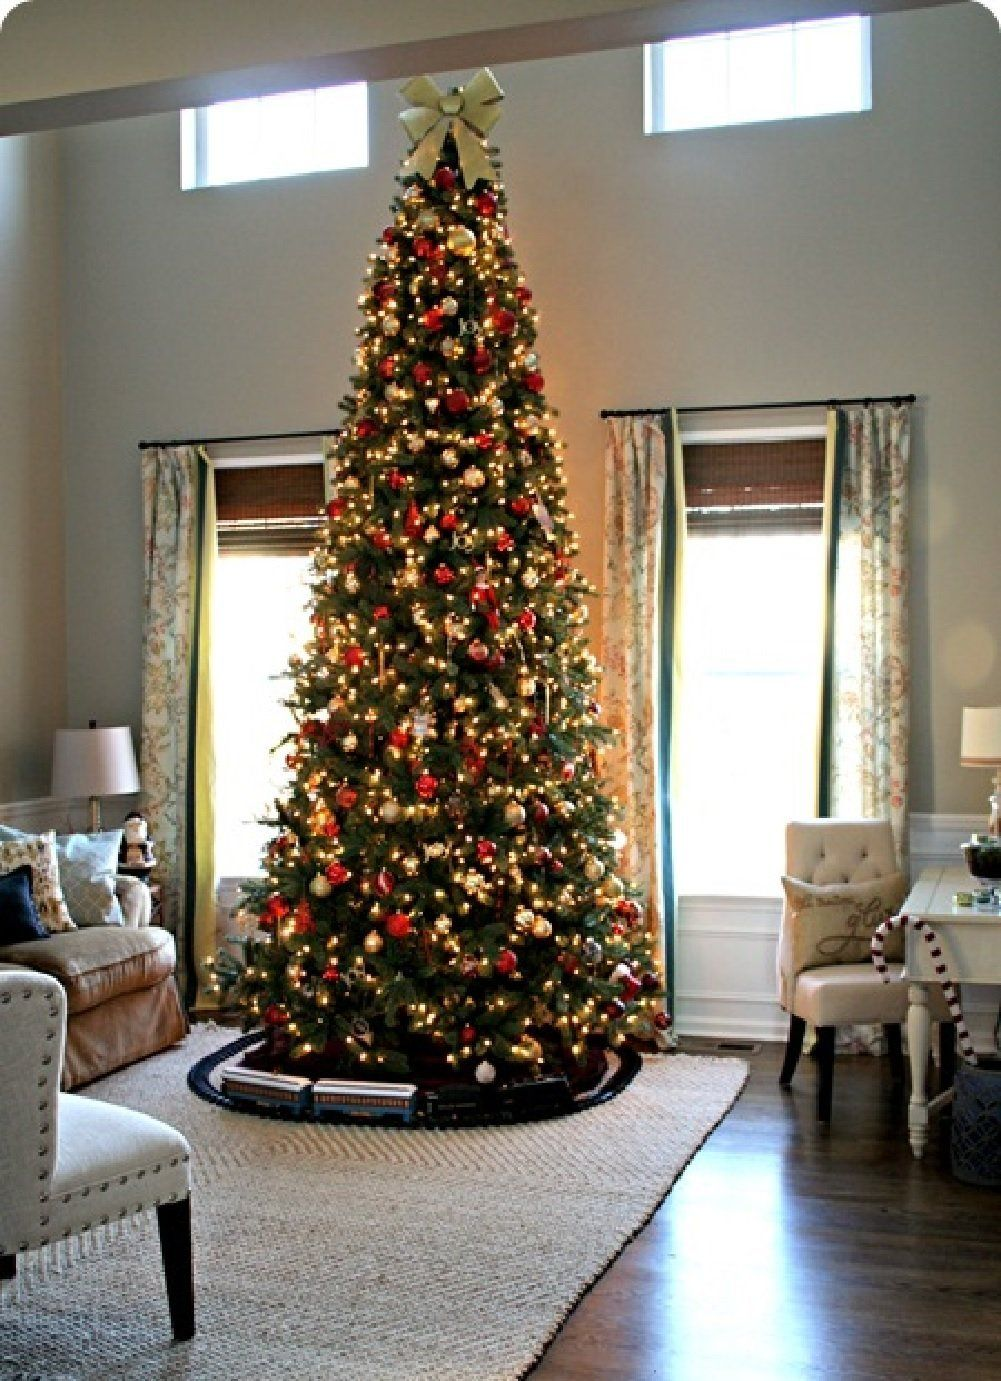 12 Ft Tall Artificial Slim Christmas Tree W 1100 Lights Stunning Dv Thank You I You Slim Christmas Tree Big Christmas Tree Creative Christmas Trees